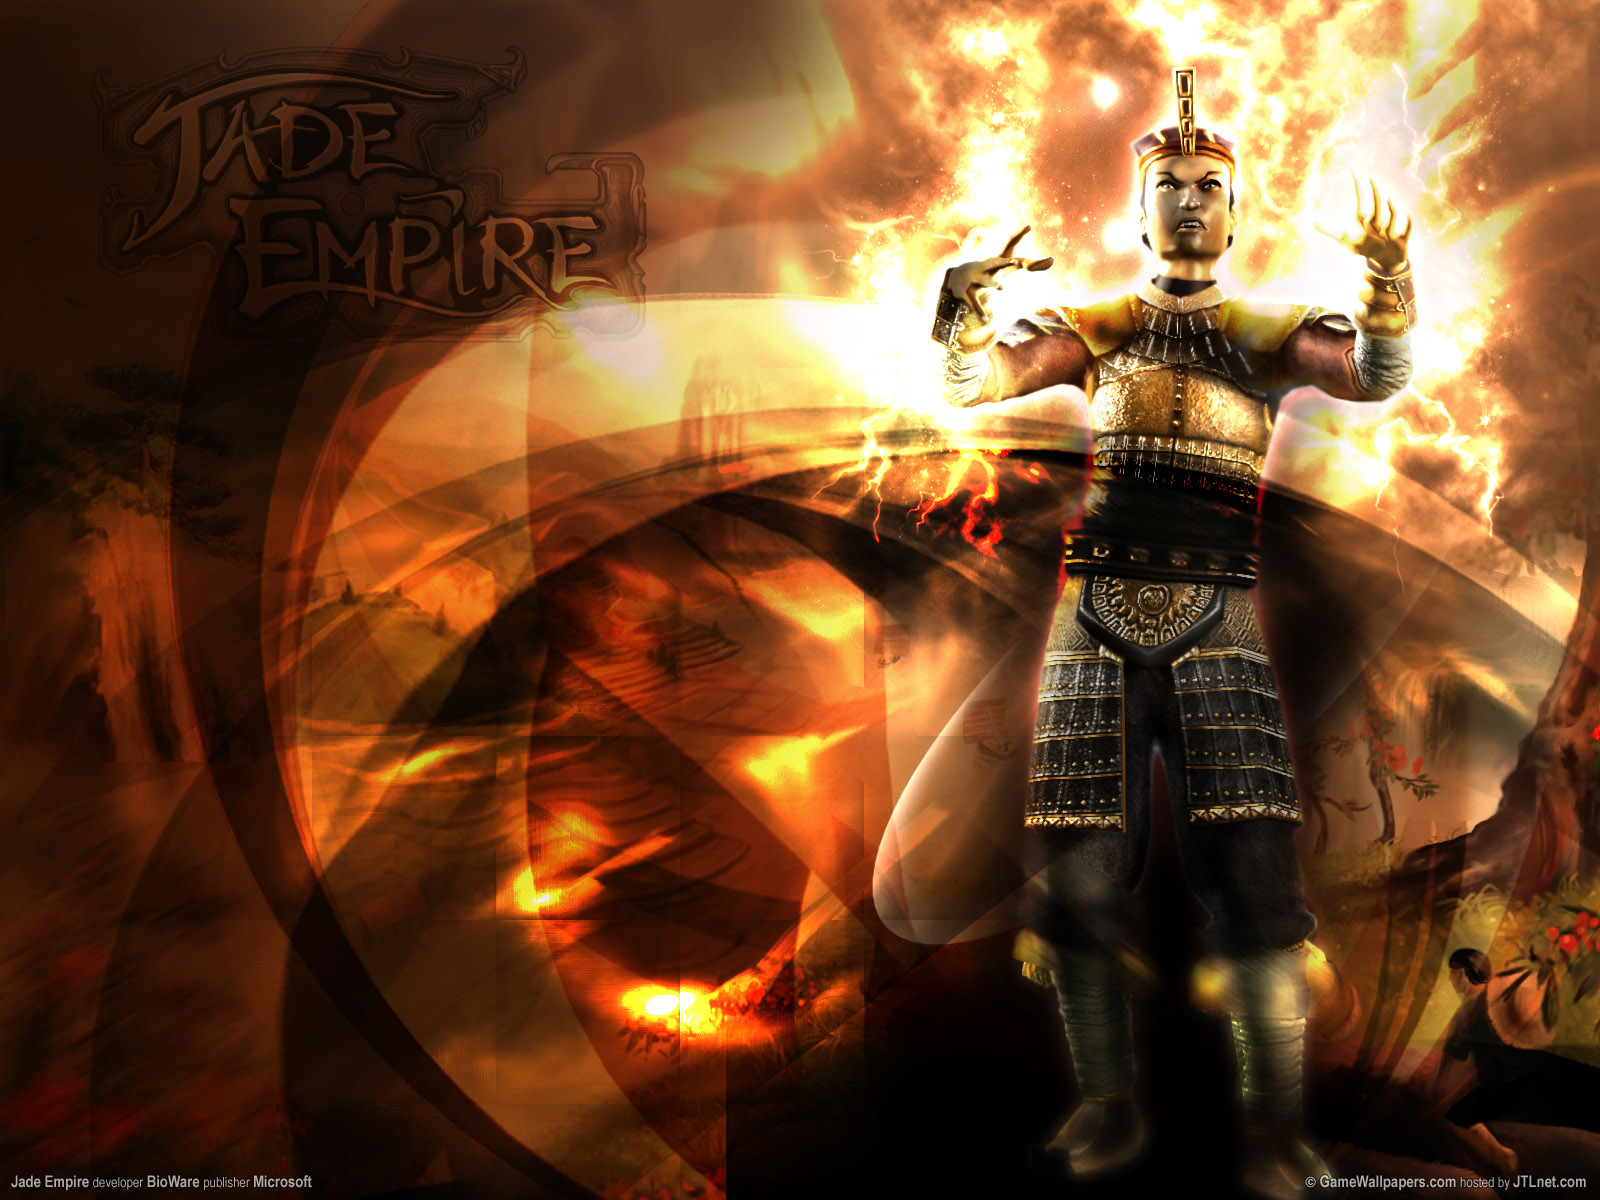 30 Newest Jade Empire Wallpapers in High Quality, Alba Matteotti